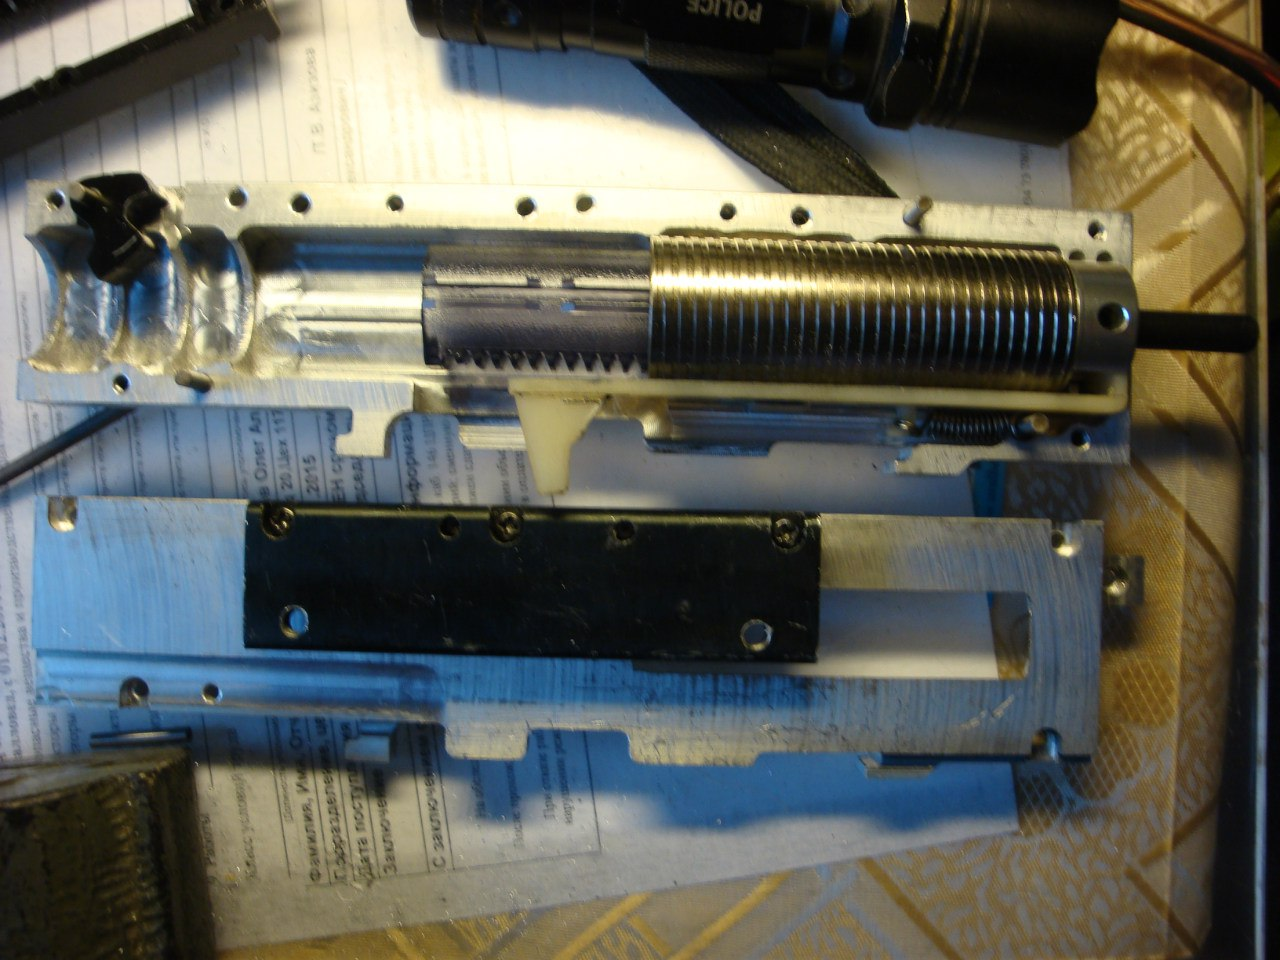 BOqpzwrx2YM matrix (s&t agm) mg42 in depth look upgrade blog page 5  at mifinder.co